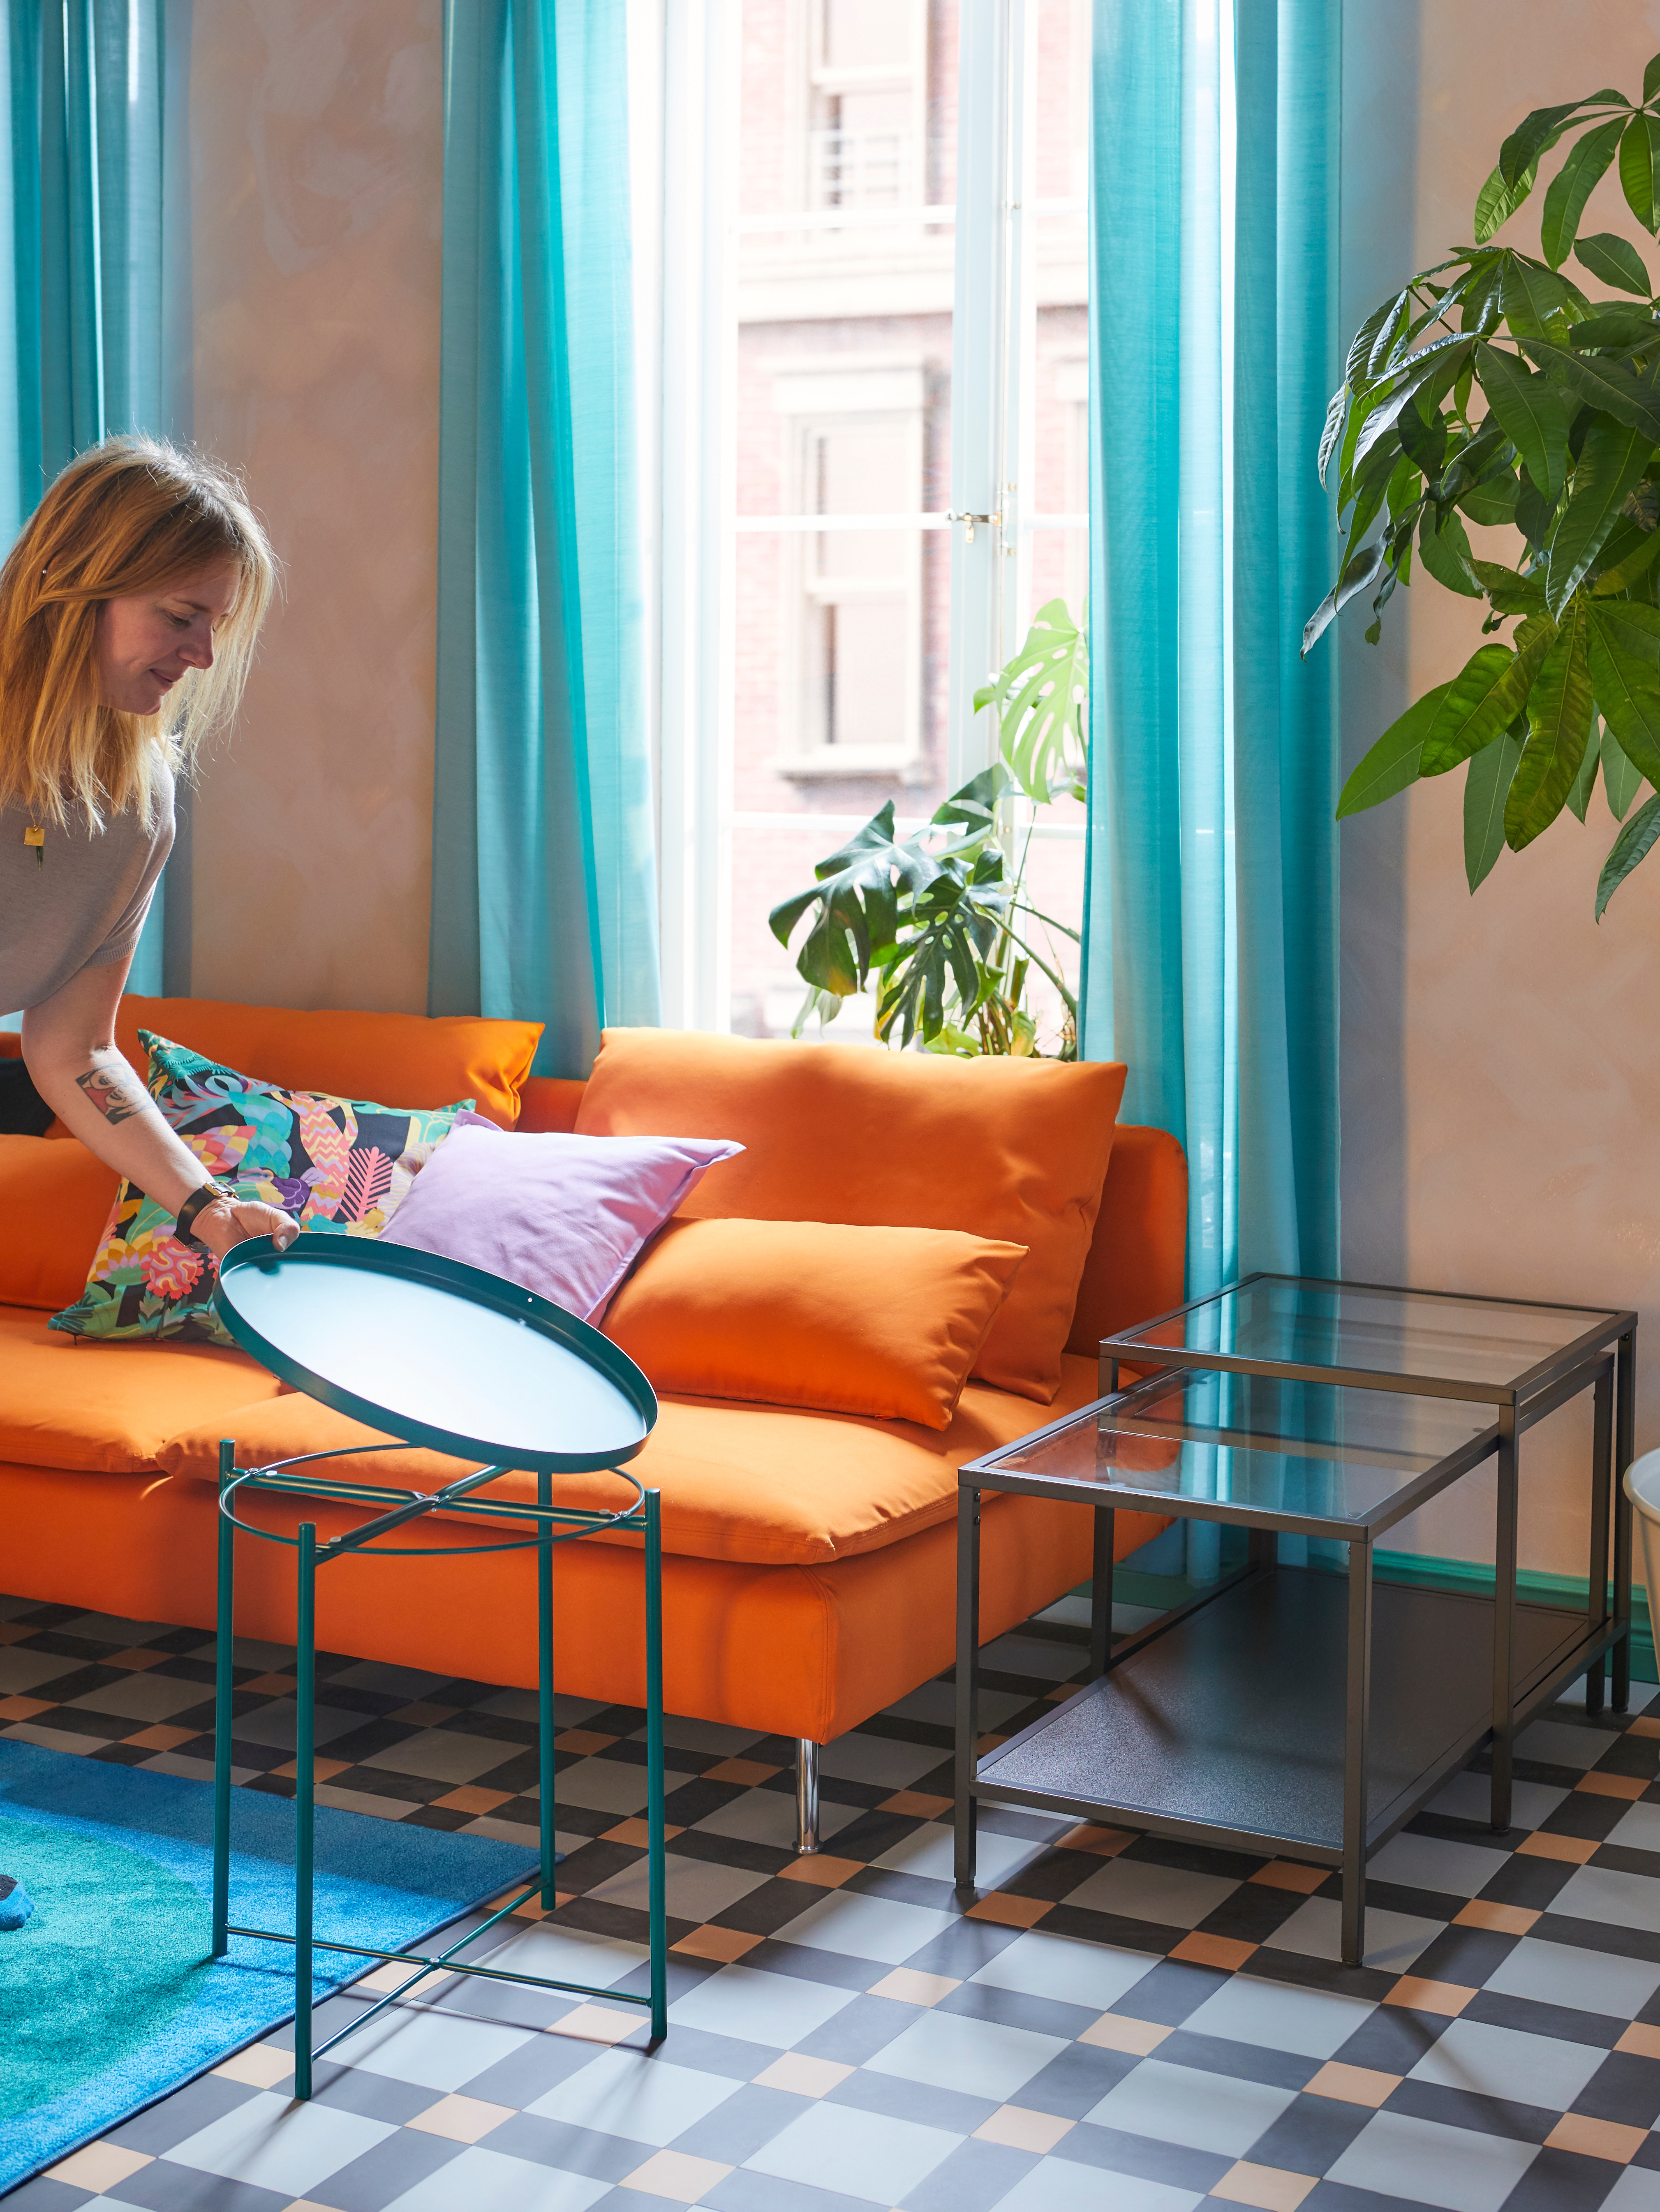 A person lifts the circular tray off a green GLADOM tray table that's near an orange sofa and a nest of tables.